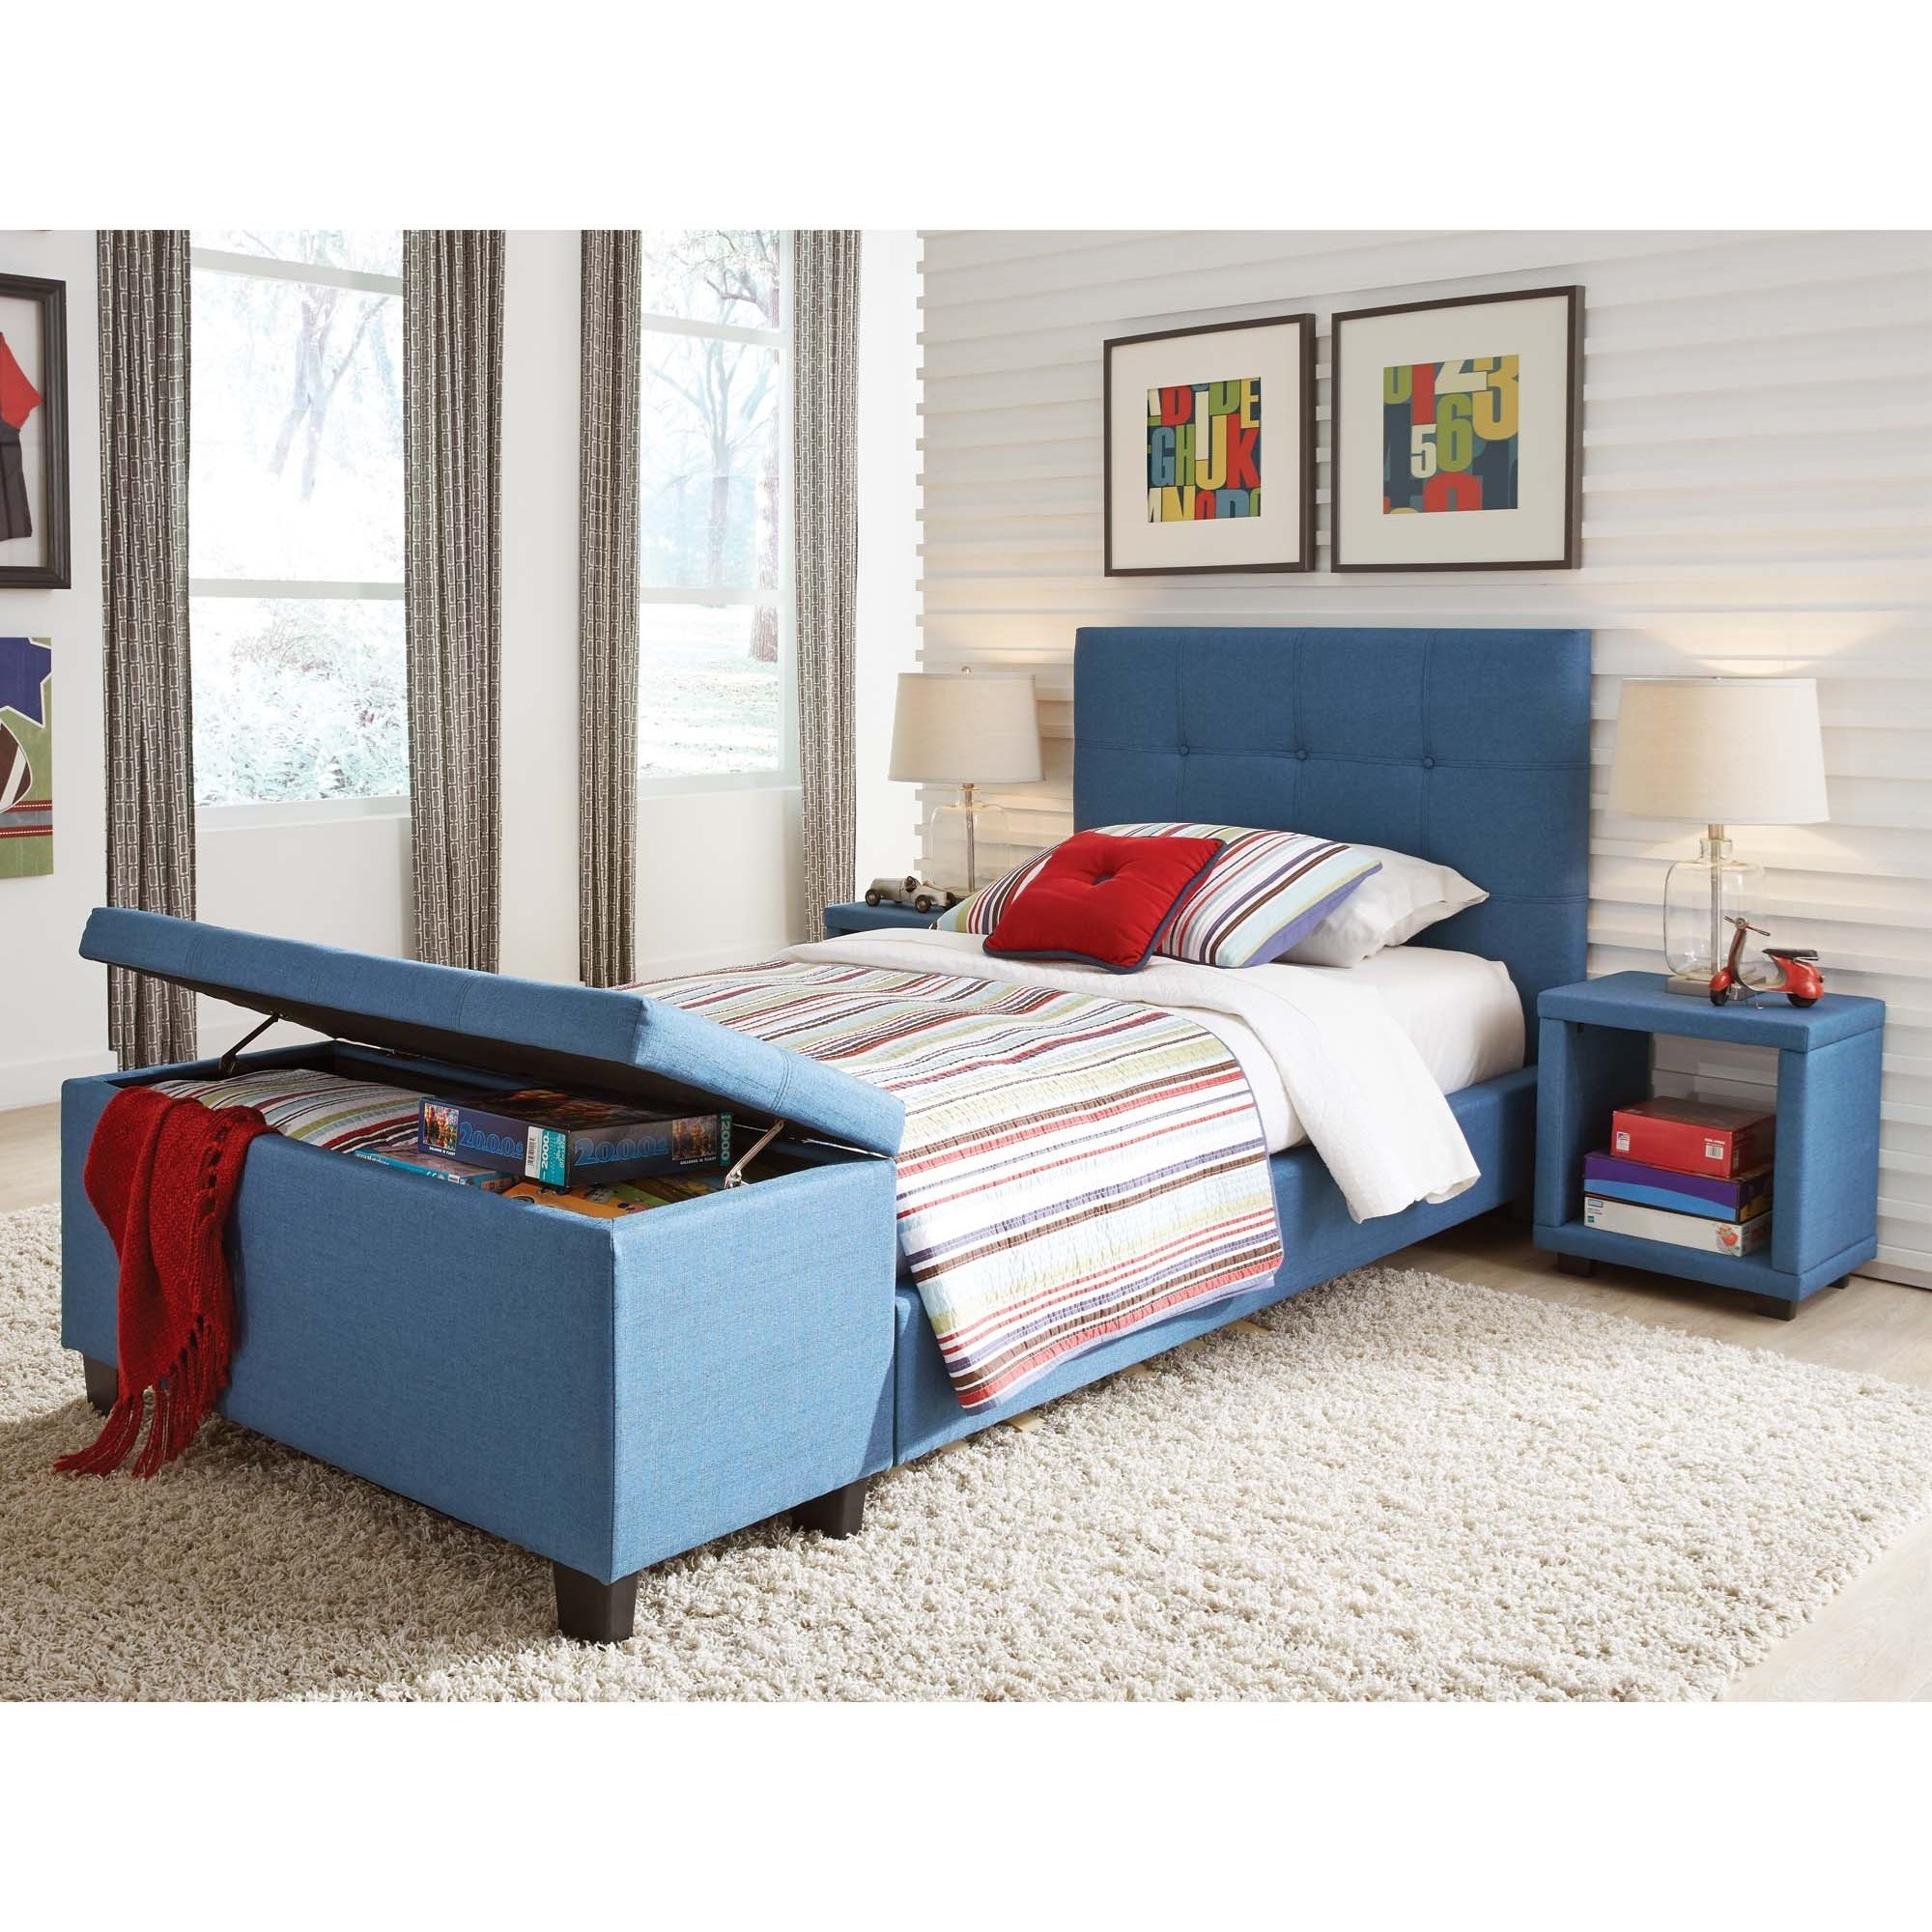 Fashion bed group henley b71d33 twin henley storage for Bedroom groups